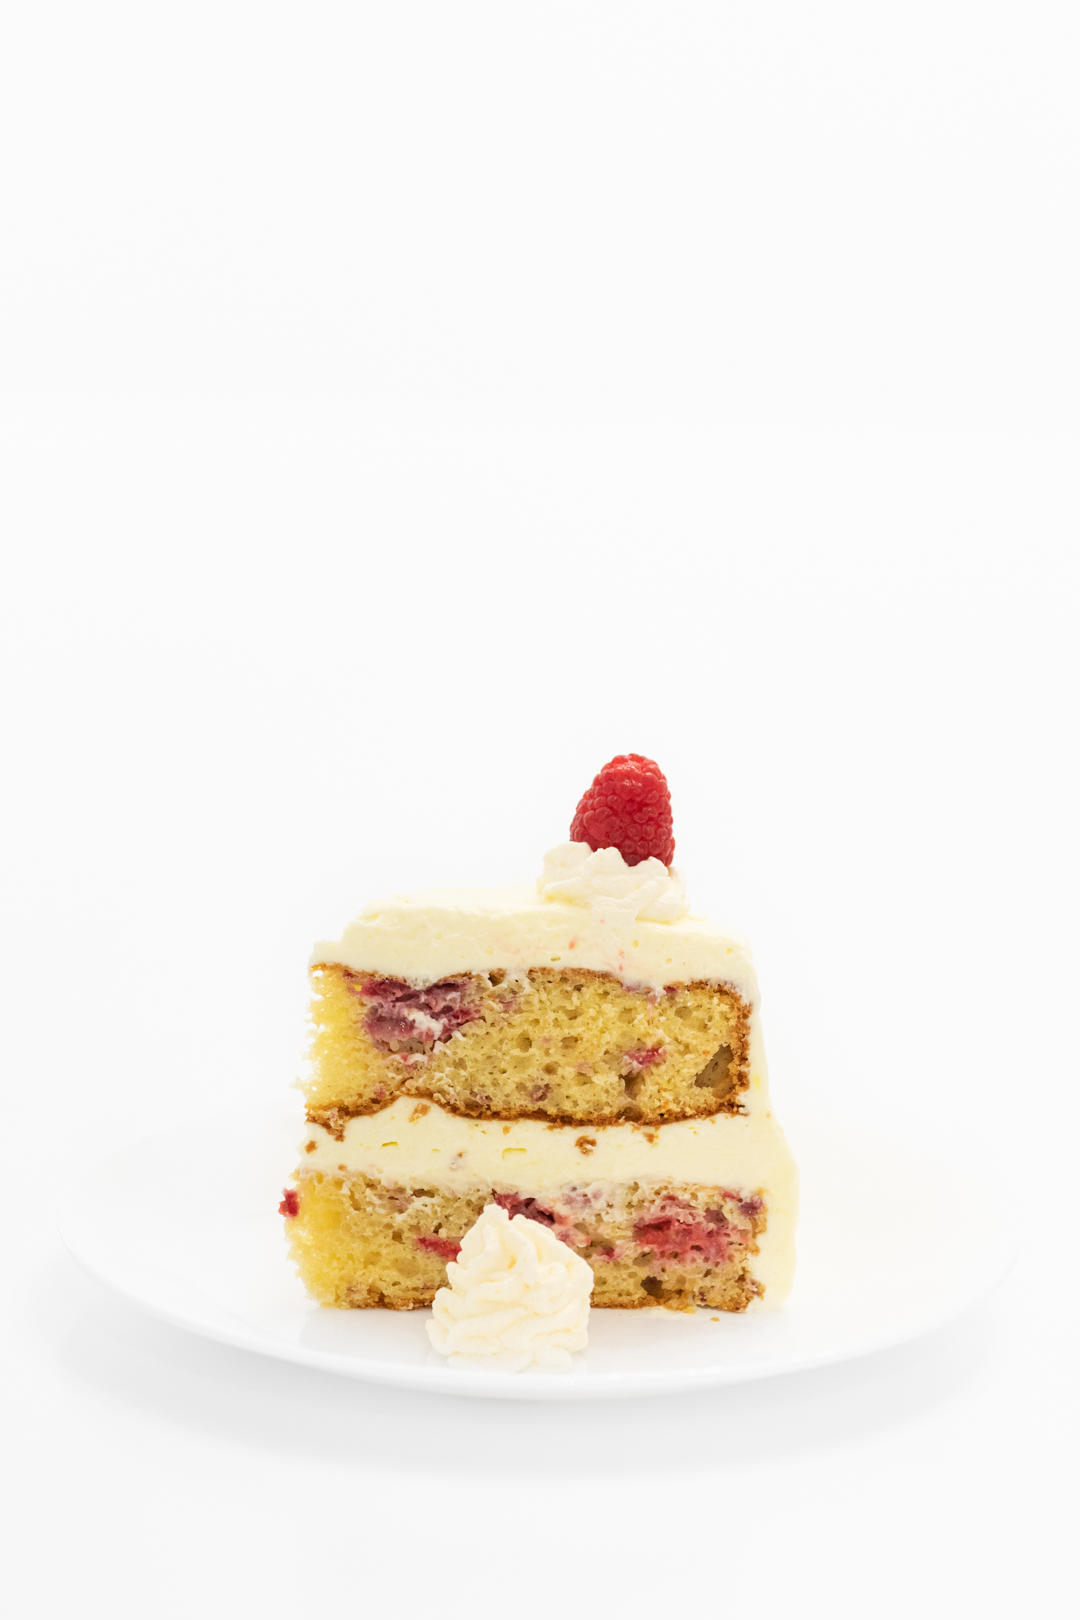 Pretty slice of fresh raspberry cake with lemon frosting.